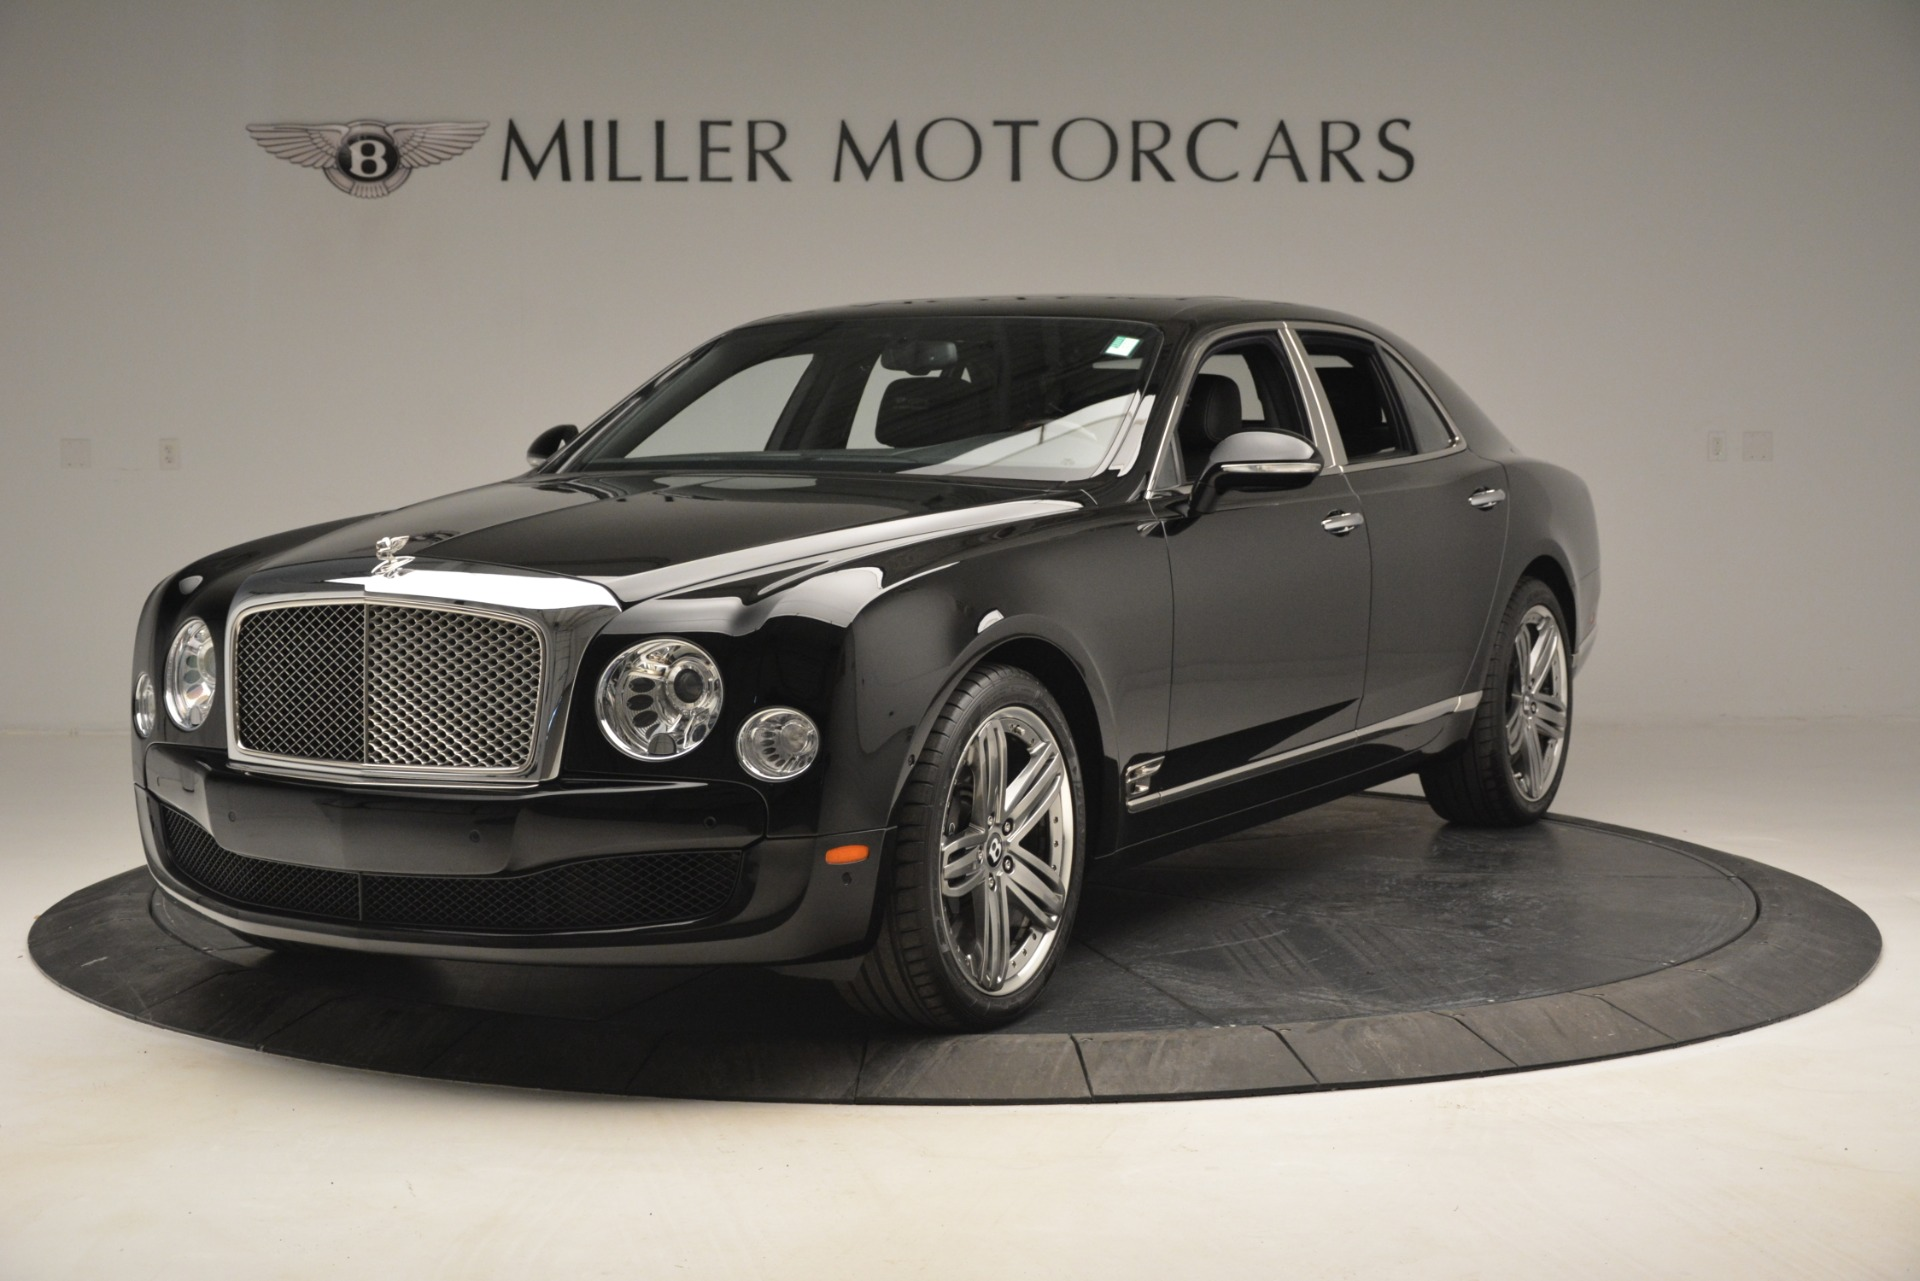 Used 2013 Bentley Mulsanne Le Mans Edition for sale Sold at Alfa Romeo of Westport in Westport CT 06880 1